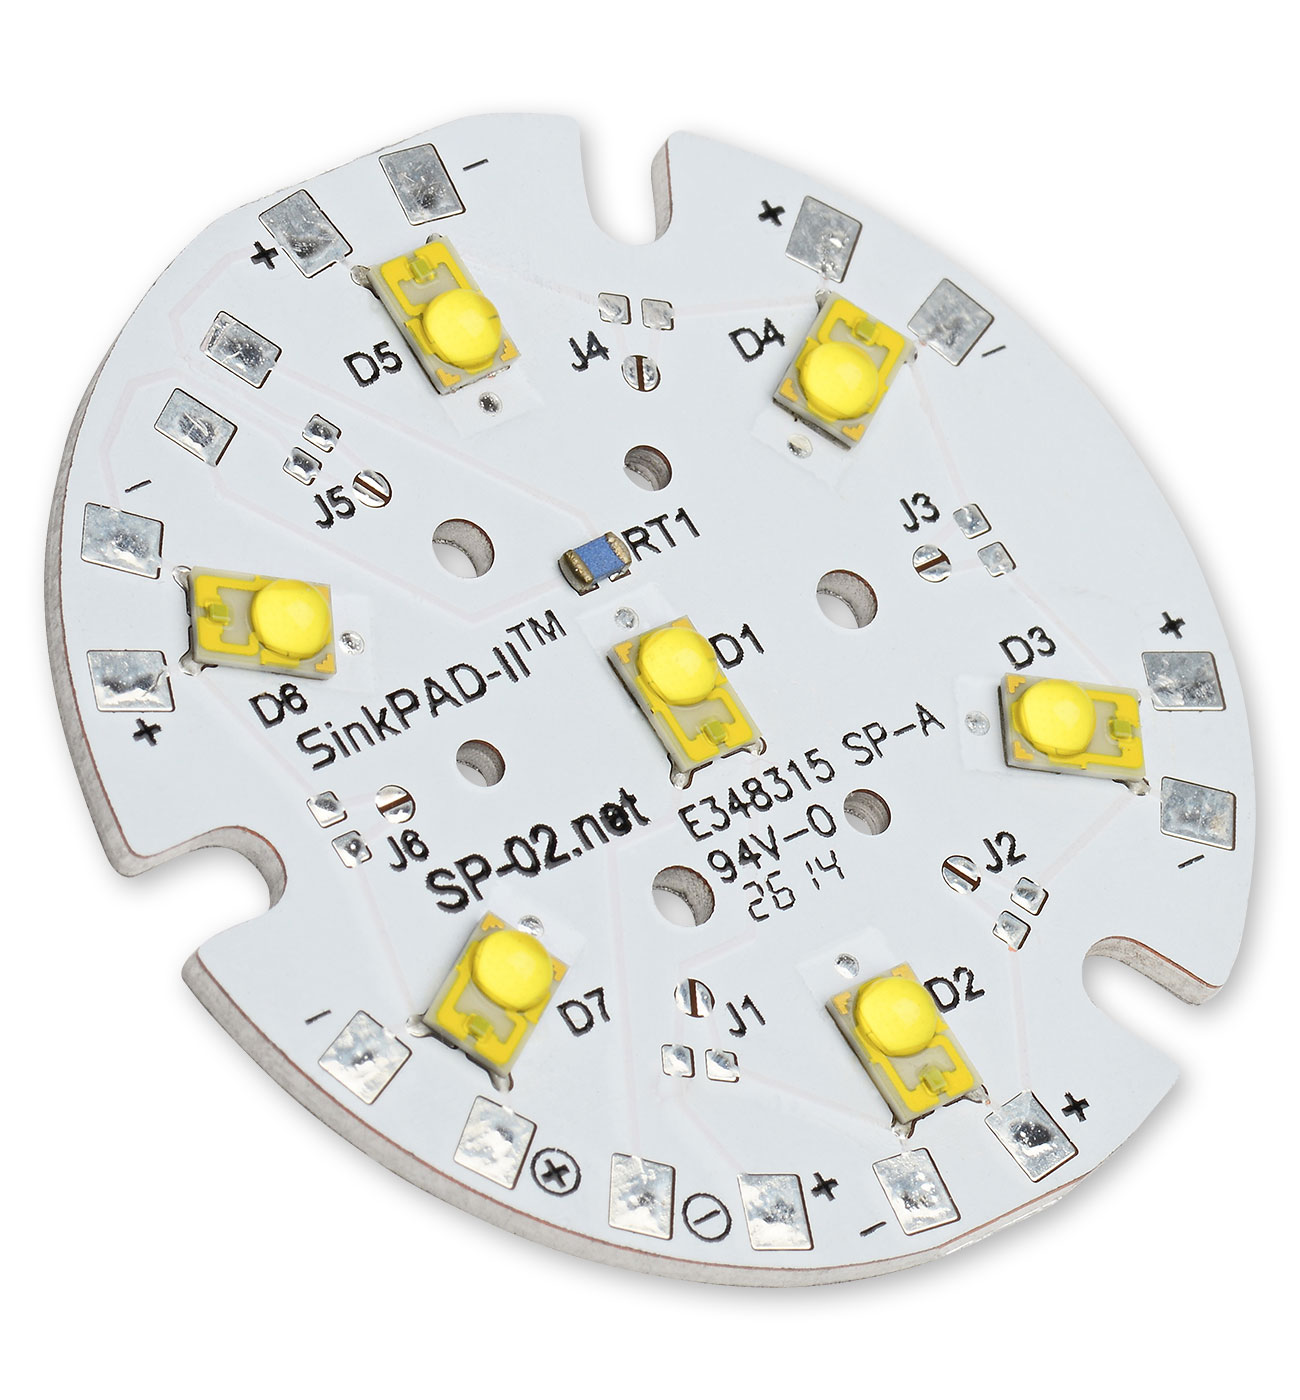 Pc Amber 591nm Sinkpad Ii 7 Led Round Module 330 Lm Zxsc400 In The Luxeon High Powered And Datasheet